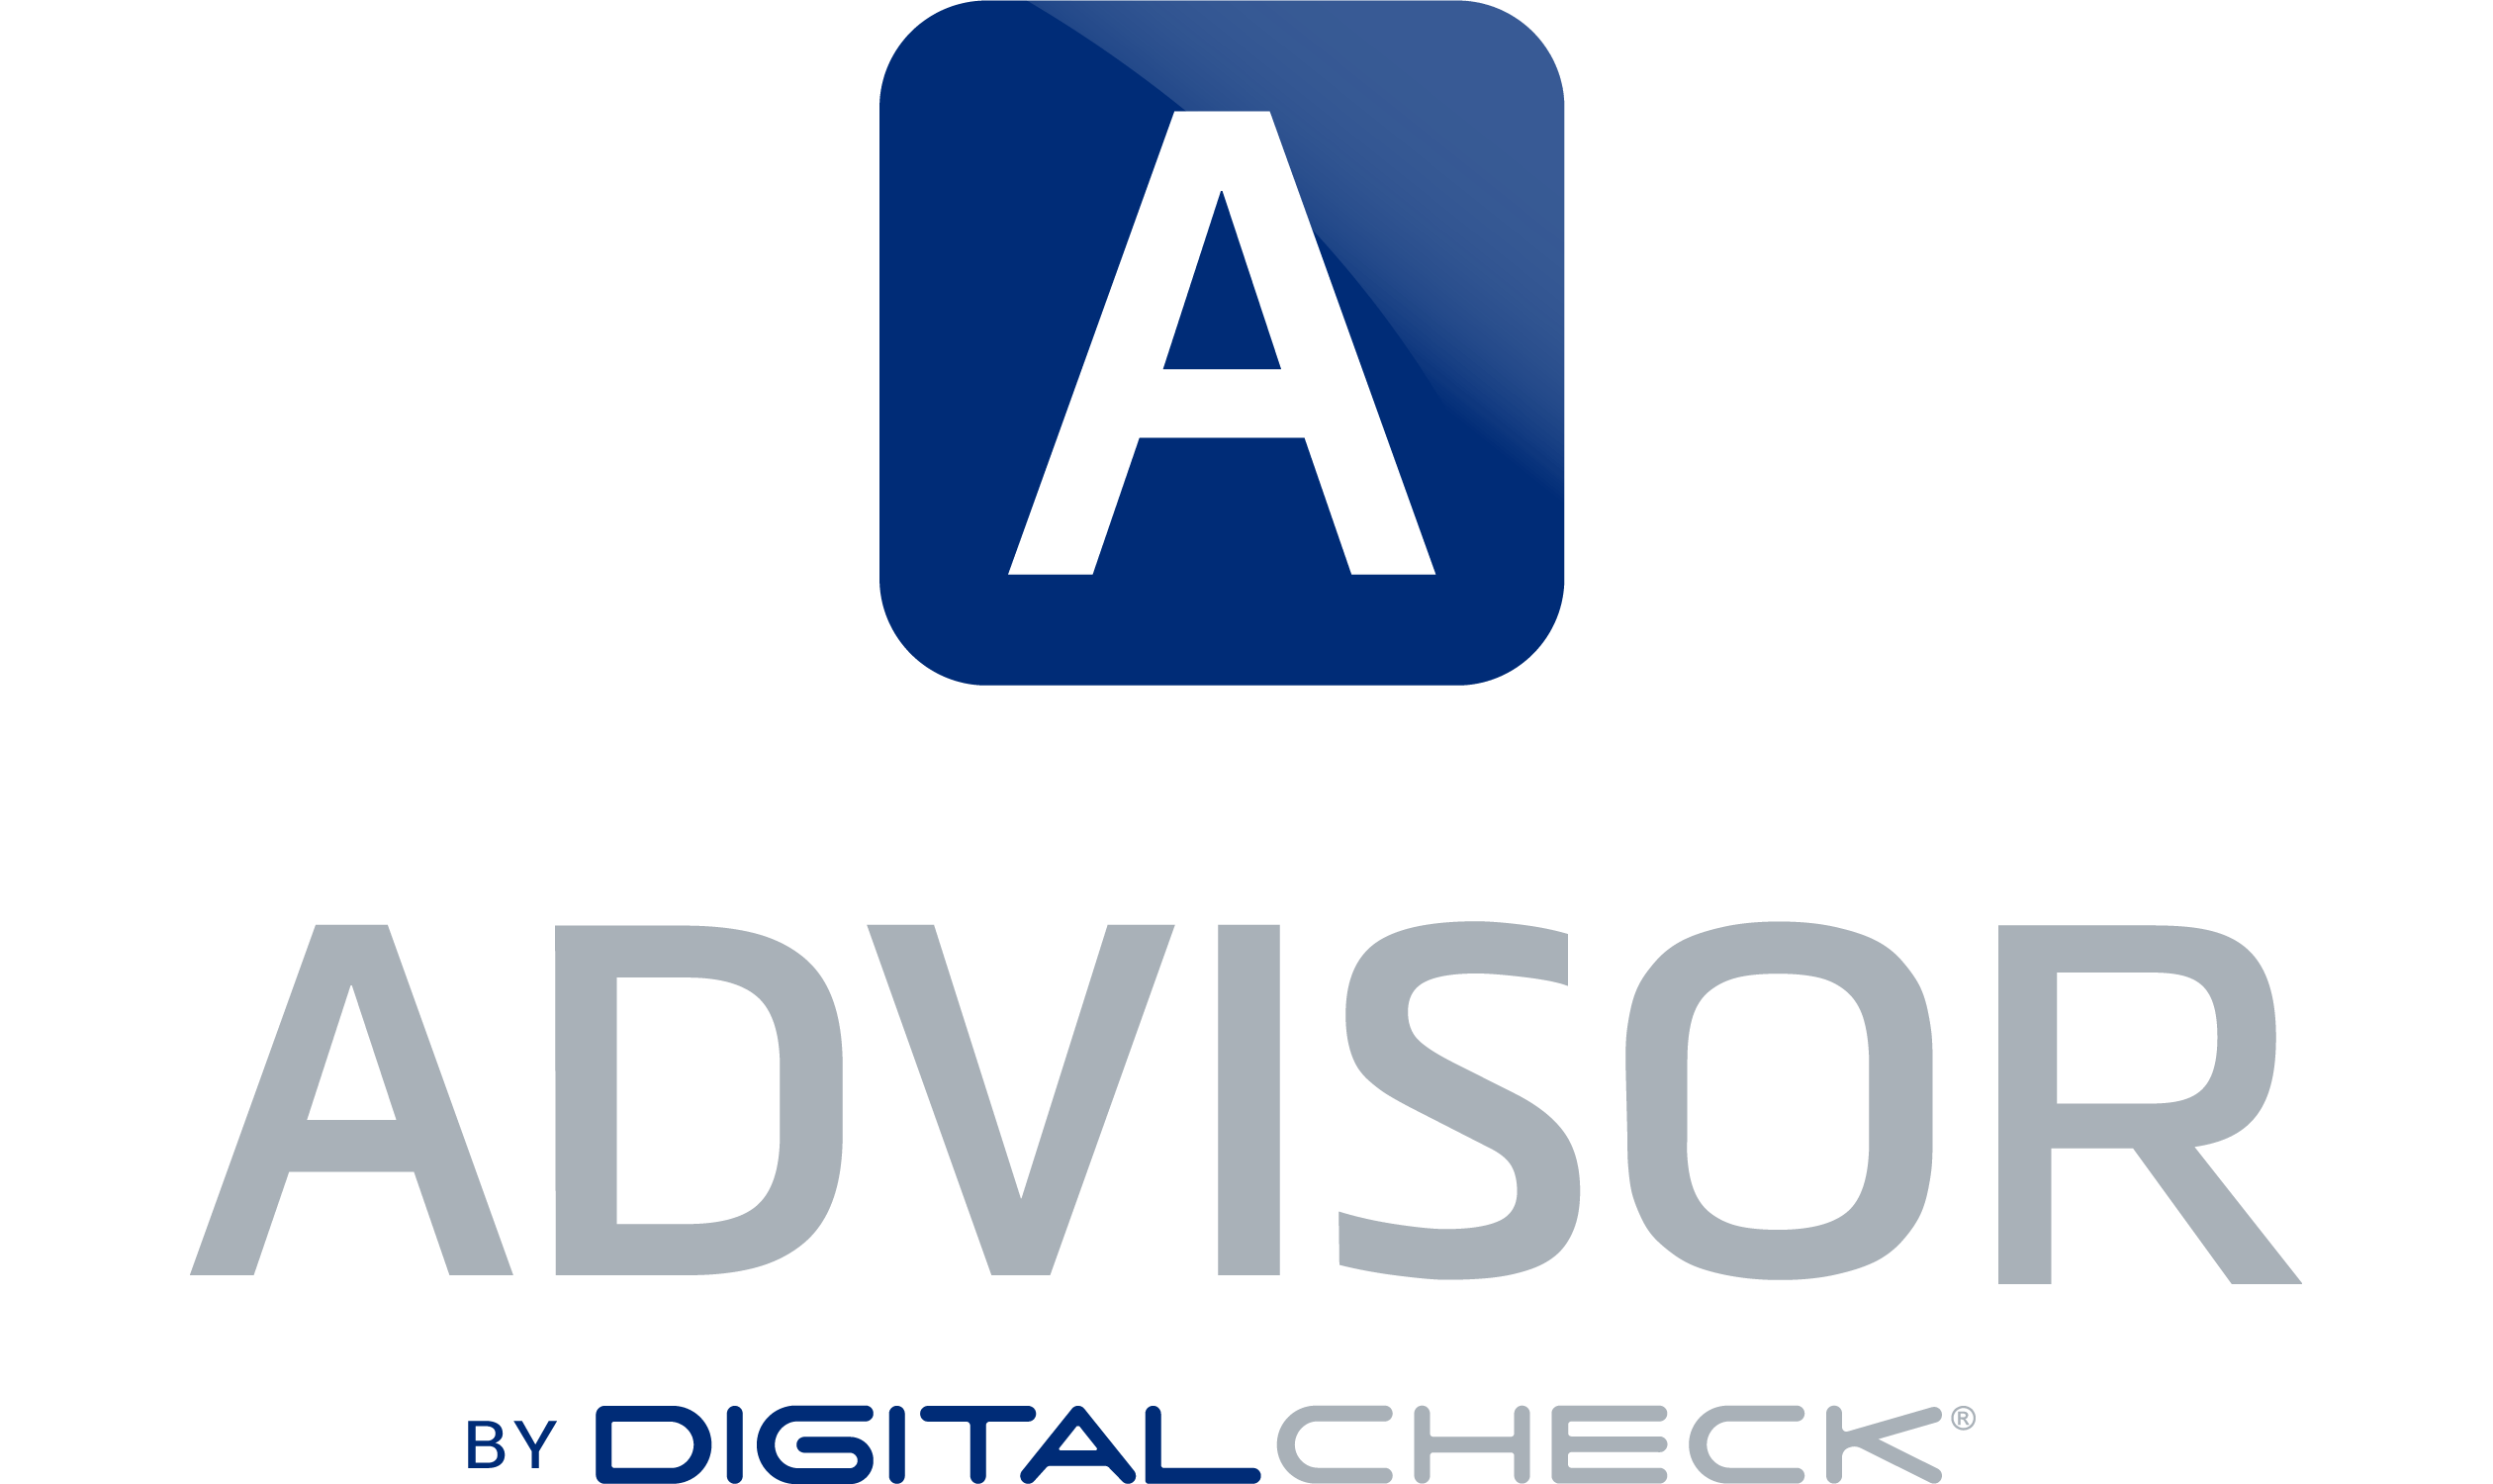 Remote Scanner location with Advisor by Digital Check